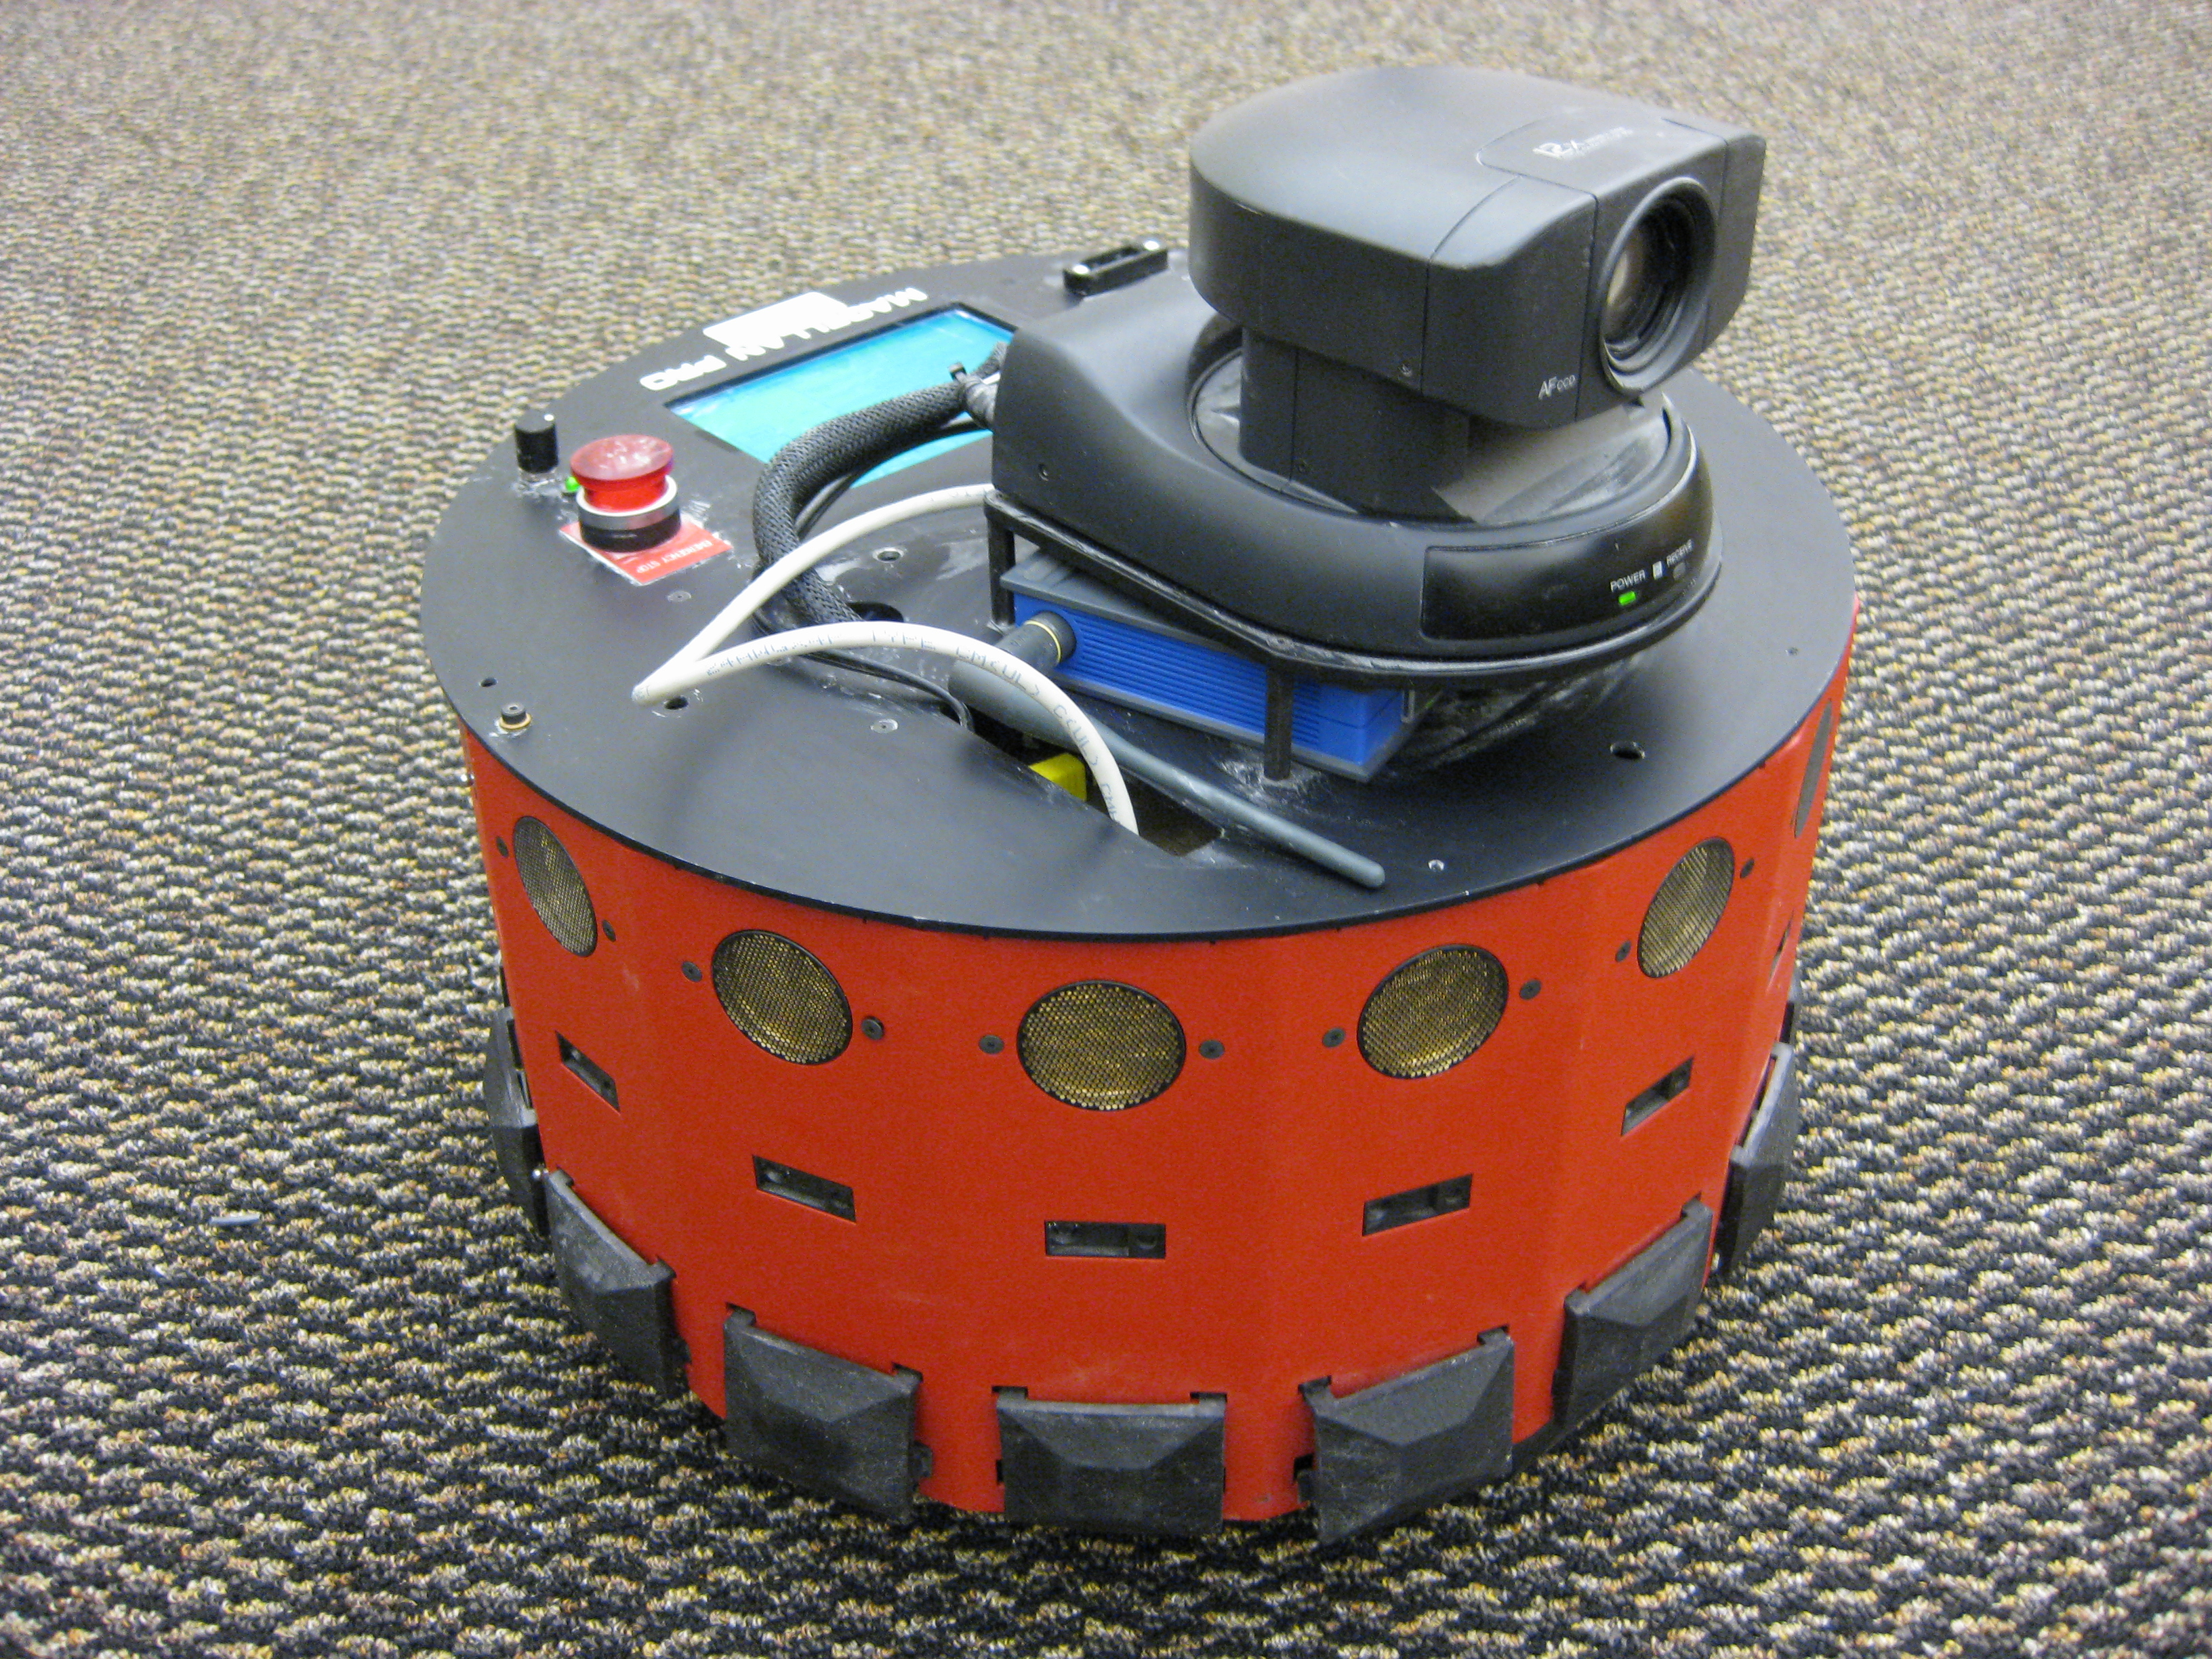 mobile robot thesis The work reported in this thesis is motivated by the need to construct a navigation system for mobile robots which can operate in unknown and partially known environments, and which has the capability to progressively learn an environment a new environment mapping procedure is described that constructs high resolution maps of an environment.